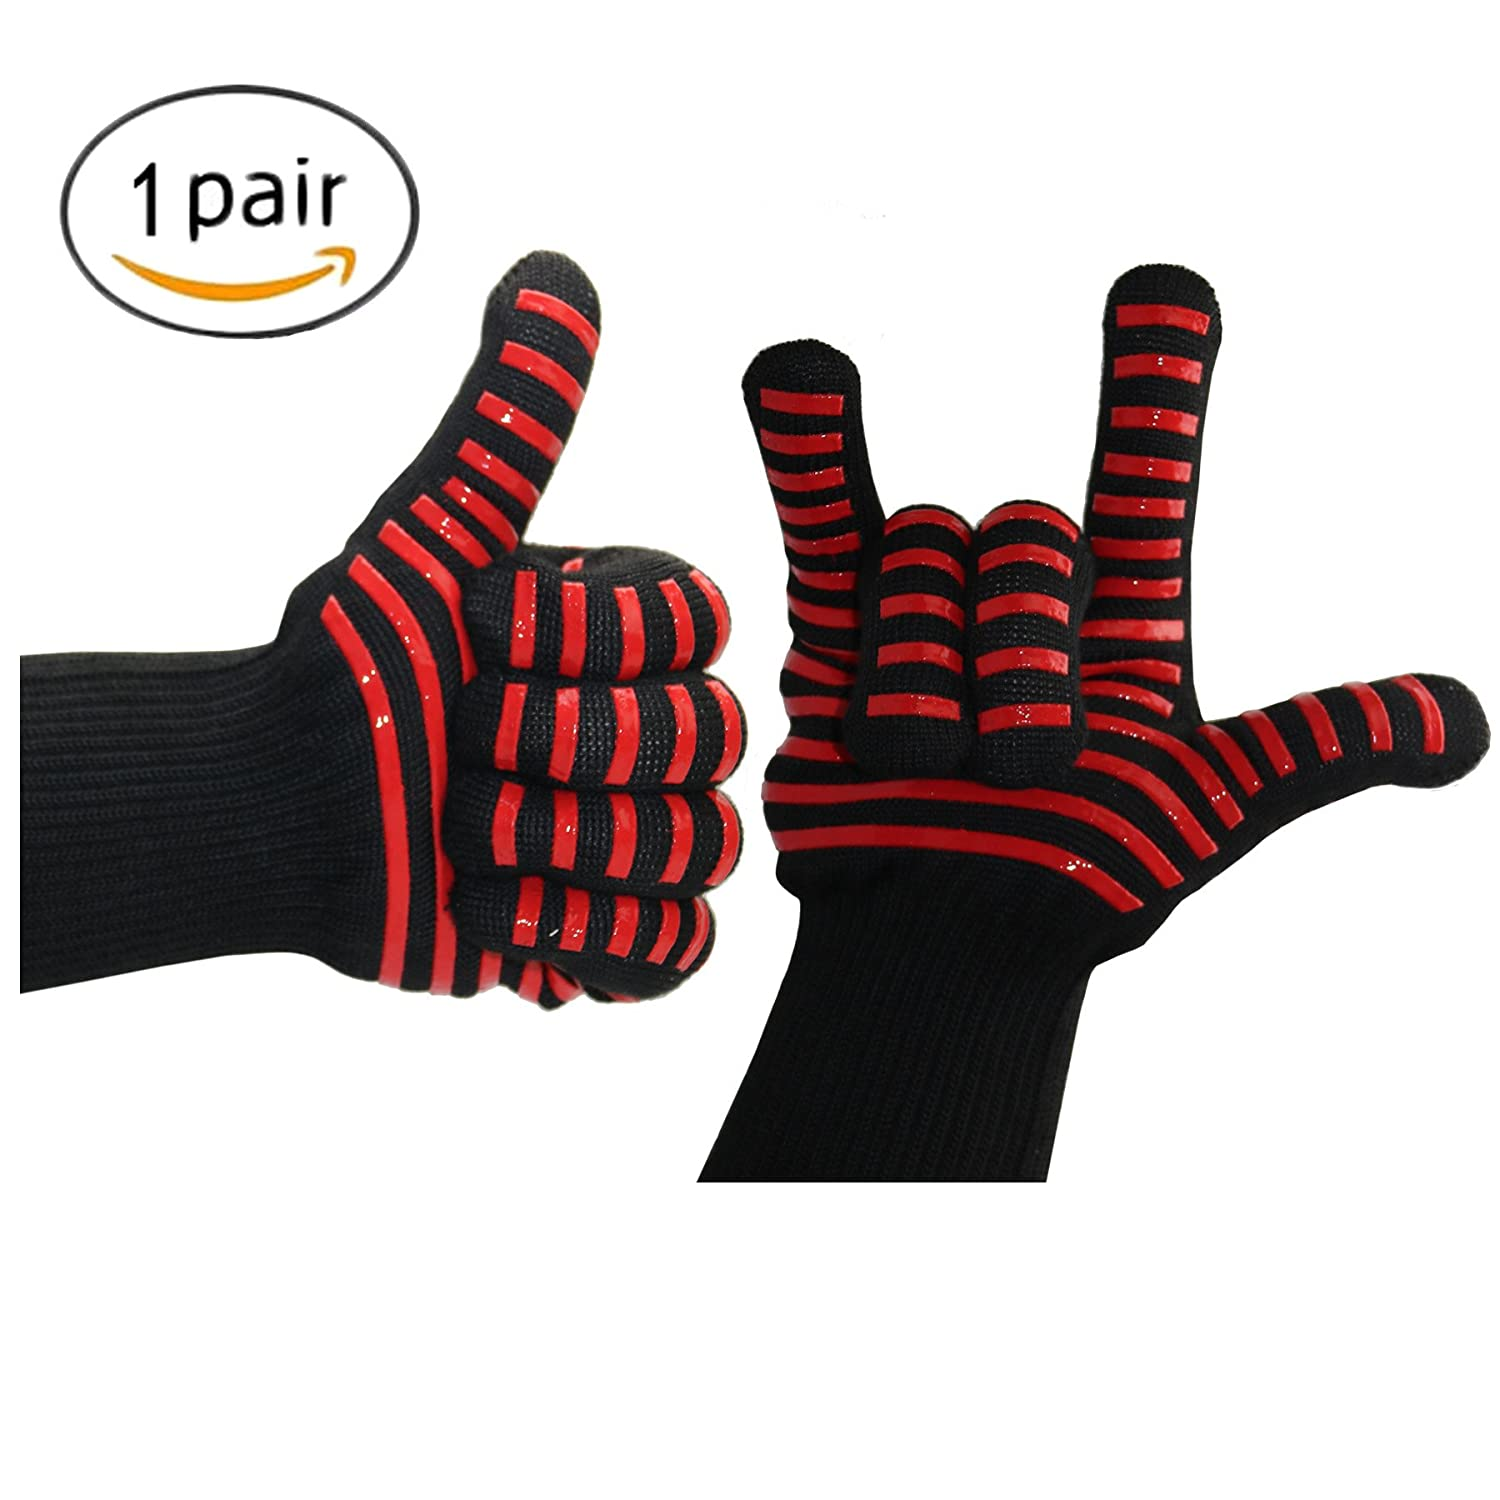 Kealux 932° F Extreme Heat Resistant Oven Gloves, BBQ Grilling Cooking Gloves, Fire Gloves For Fireplace and Fire Pit, Smoker & Kitchen Accessories-1 Pair(Black/Black dot)